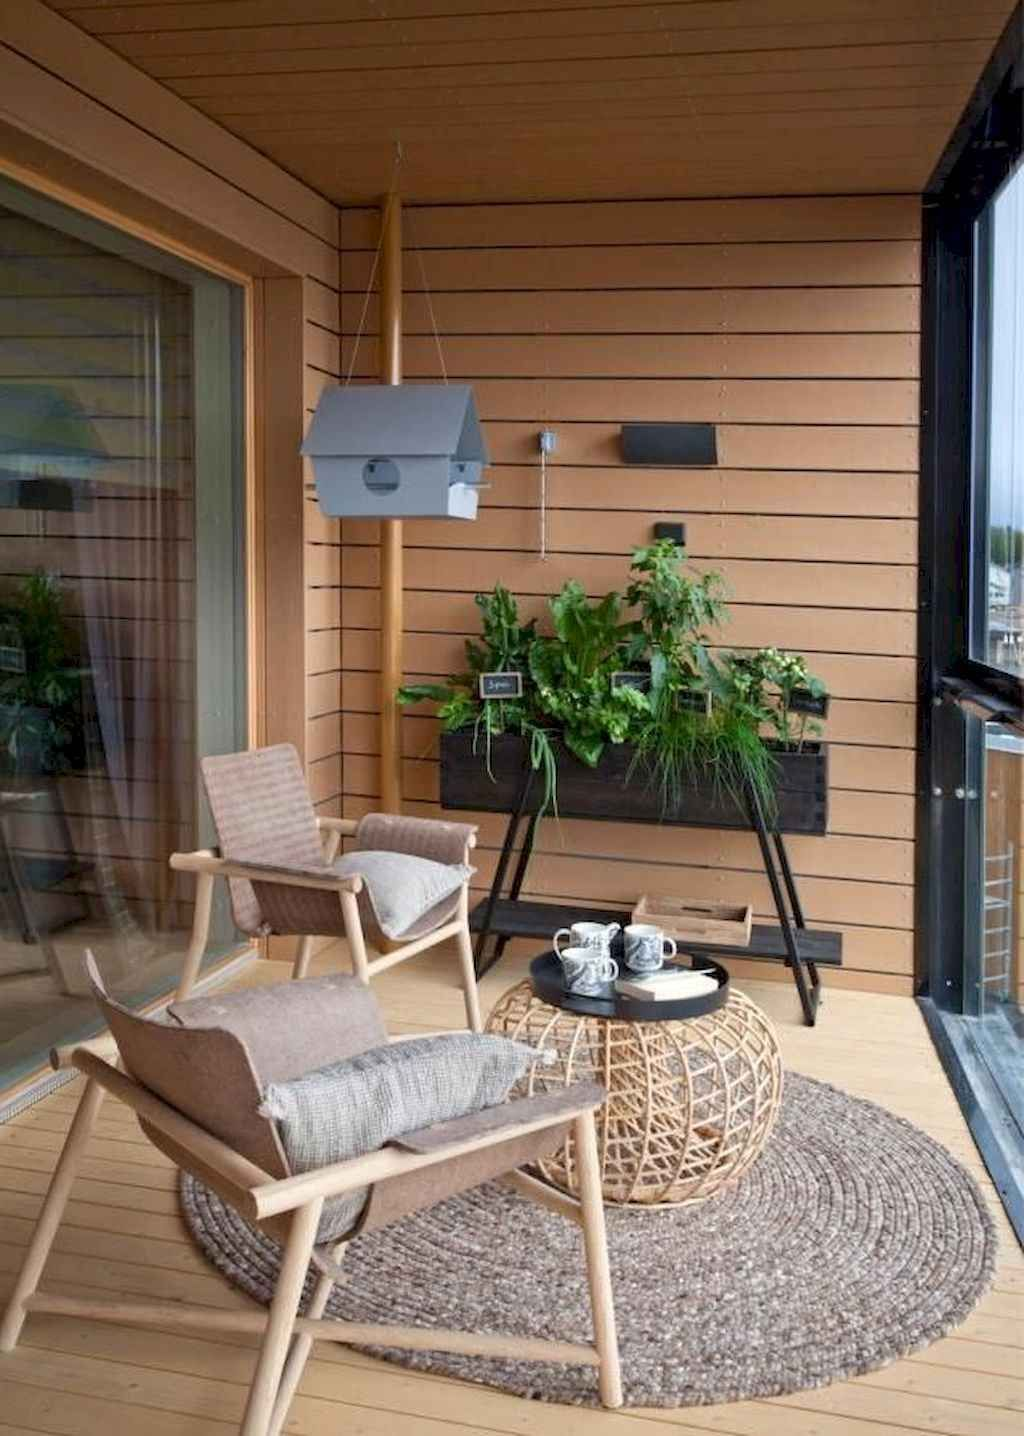 We have to create large spaces with small balconies as a result of the small houses and structures that are the result of modern times Especially considering that there a...